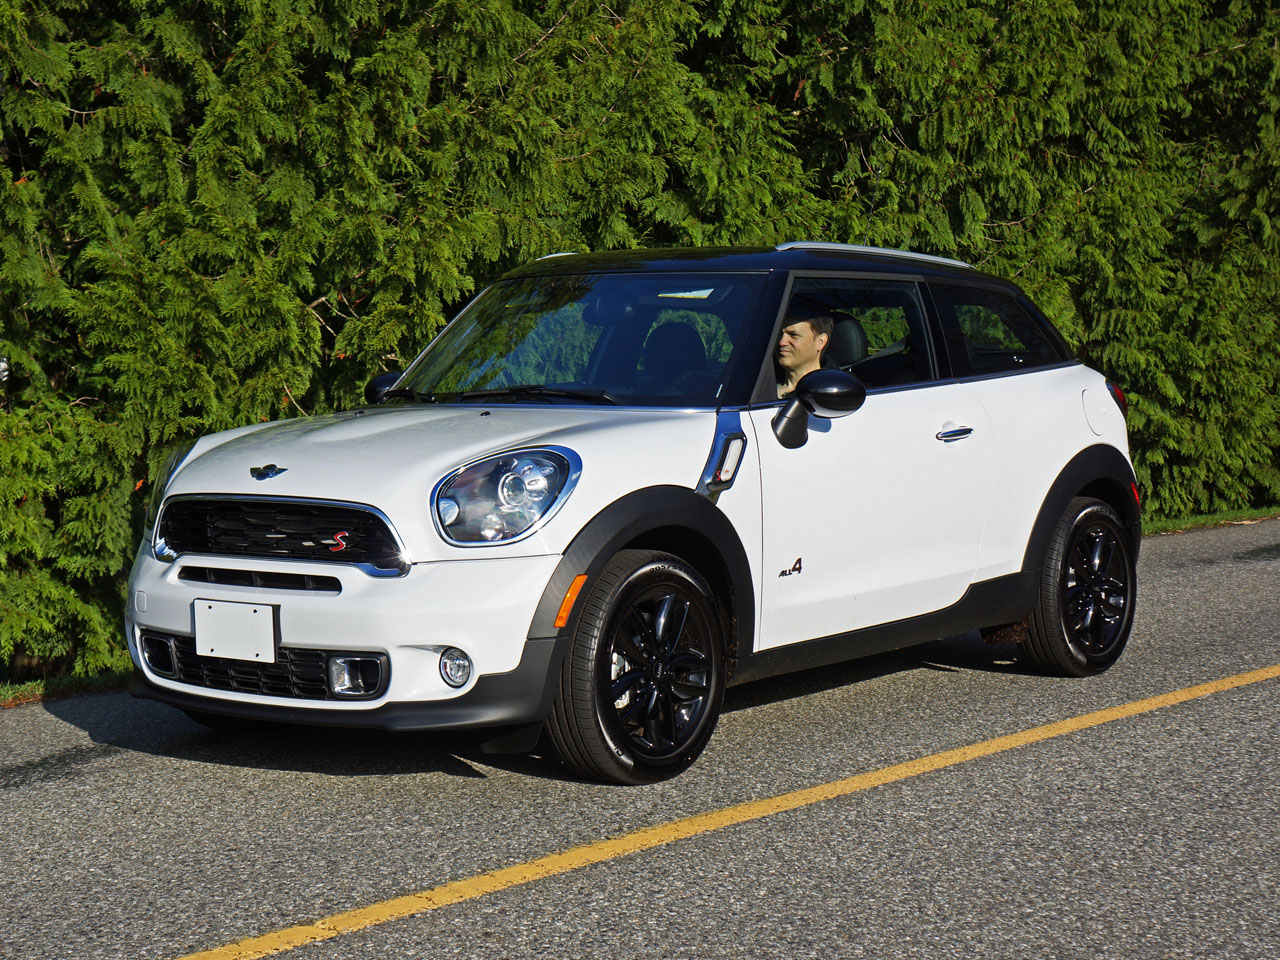 2015 mini cooper s all4 paceman road test review carcostcanada. Black Bedroom Furniture Sets. Home Design Ideas